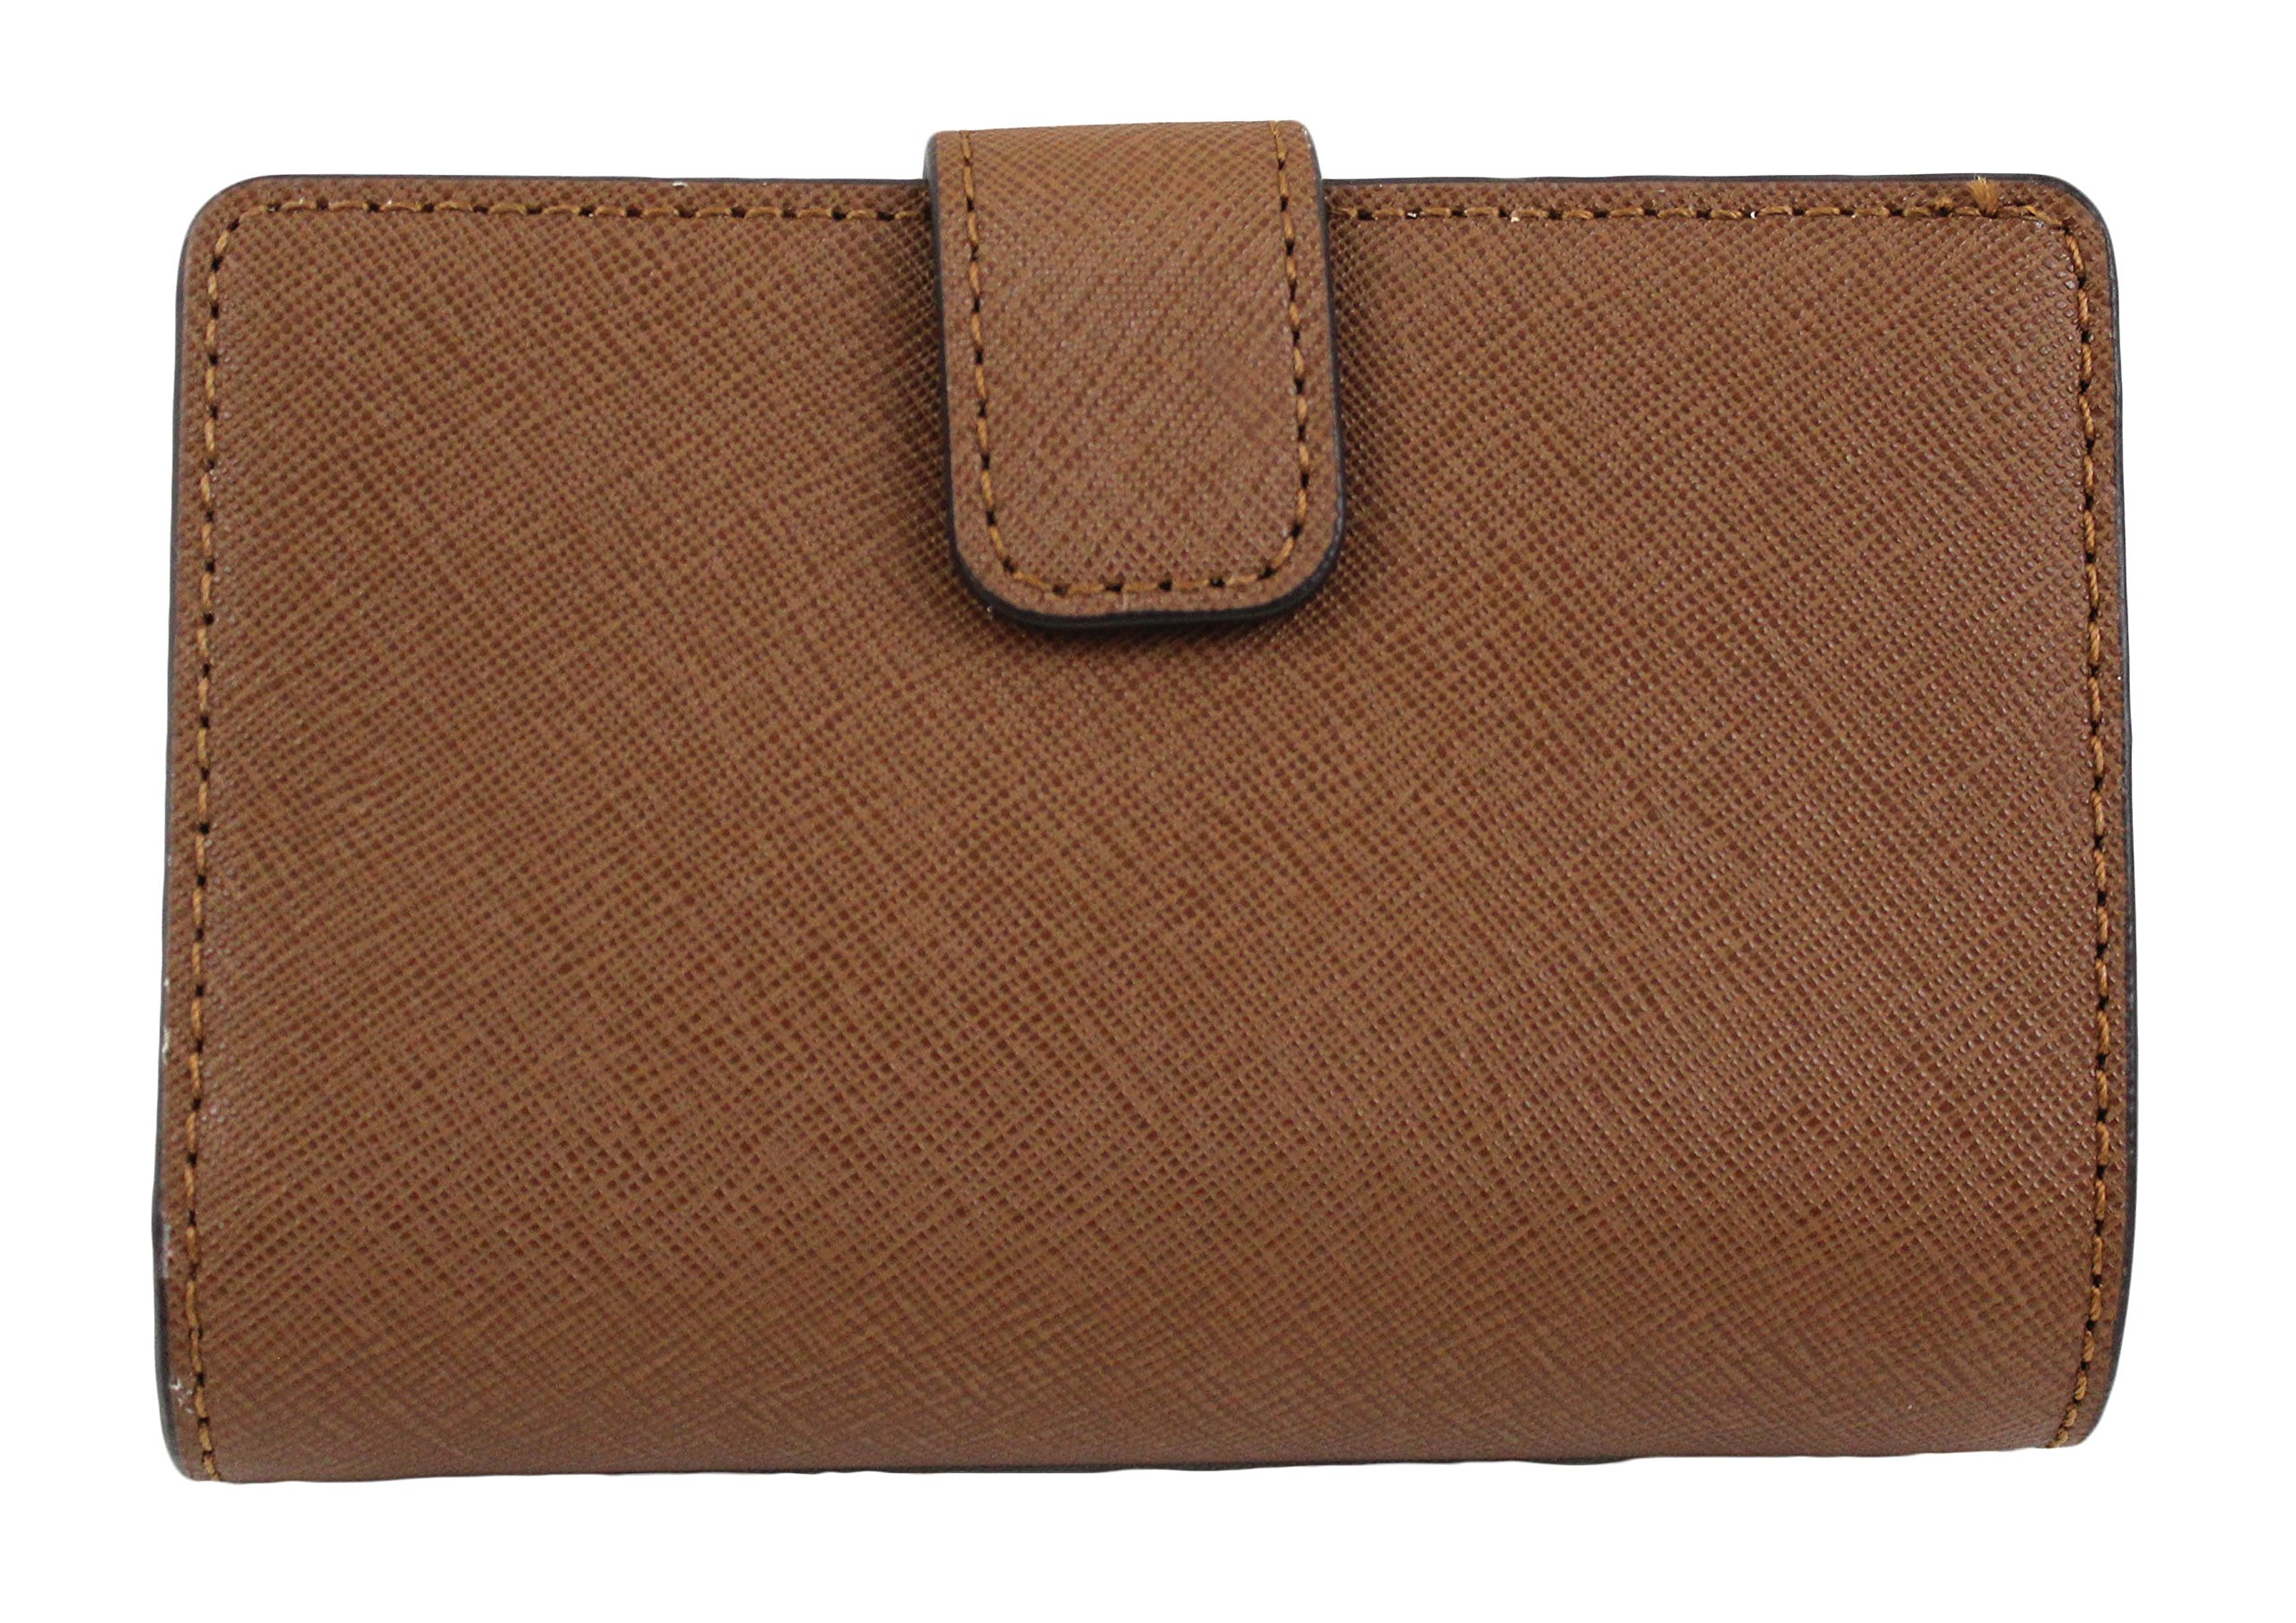 MICHAEL Michael Kors Jet Set Travel Bifold Zip Coin Wallet (Luggage) by Michael Kors (Image #2)